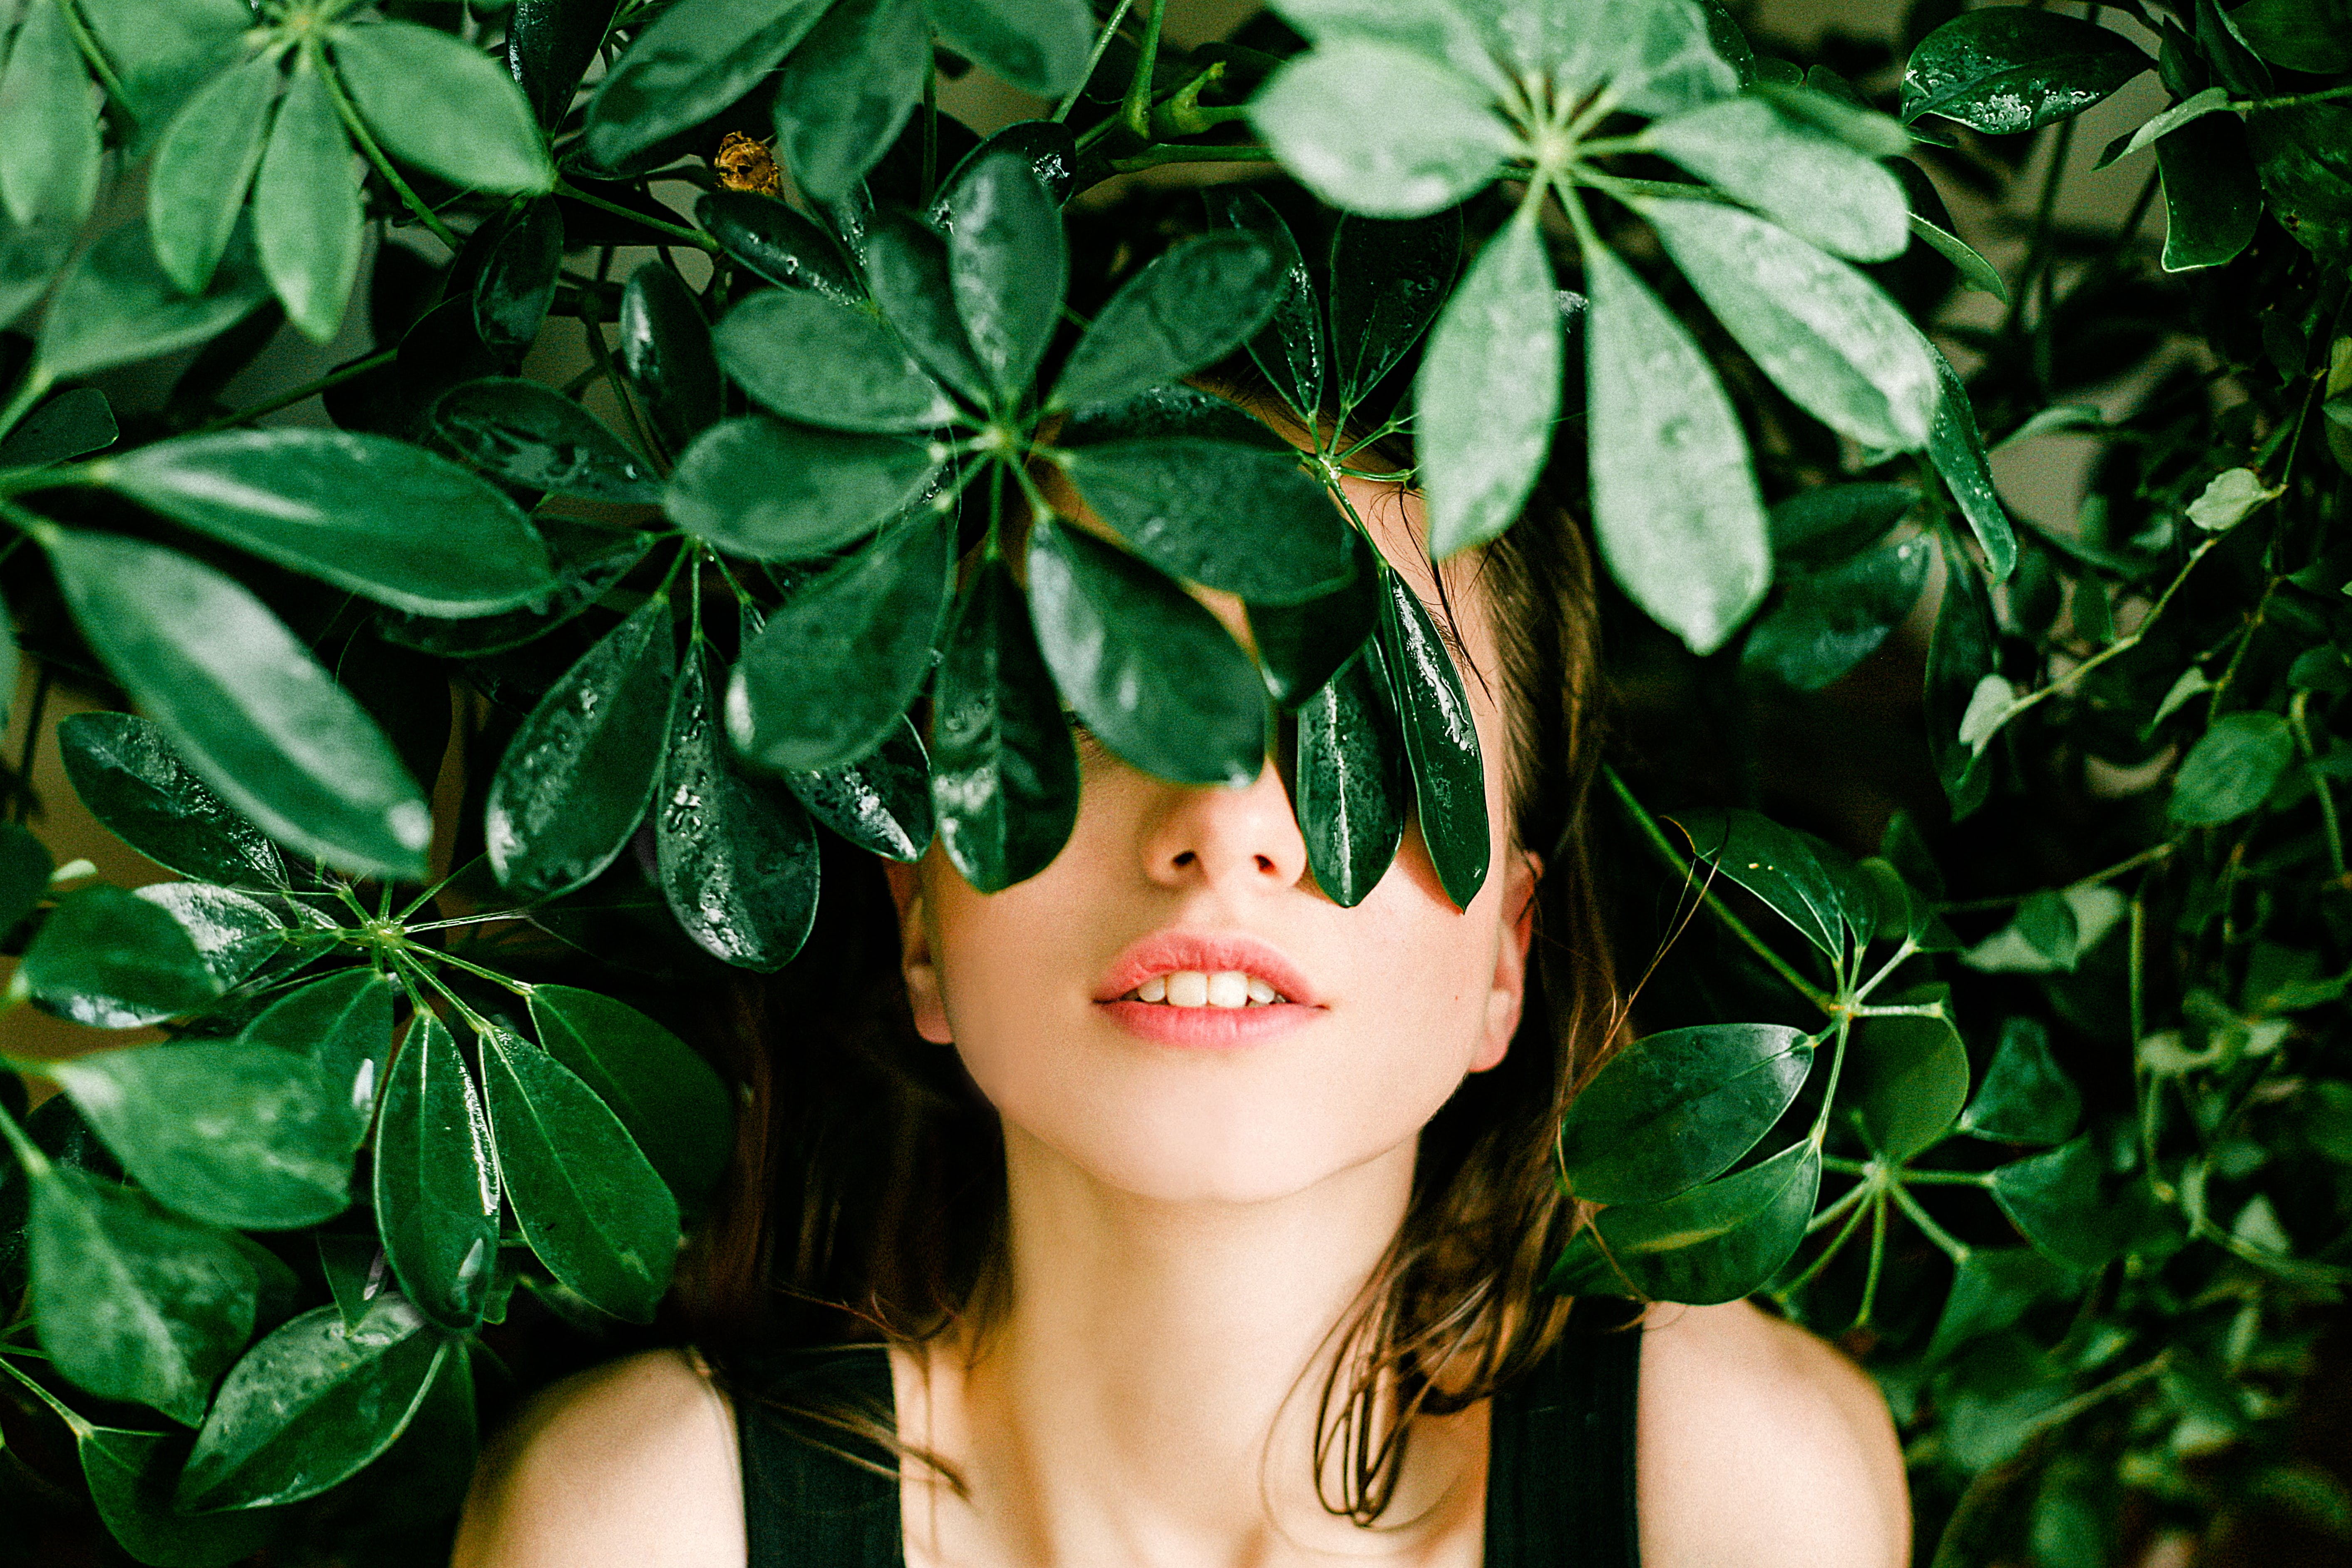 Woman in Black Top Beside Green Leafed Plant